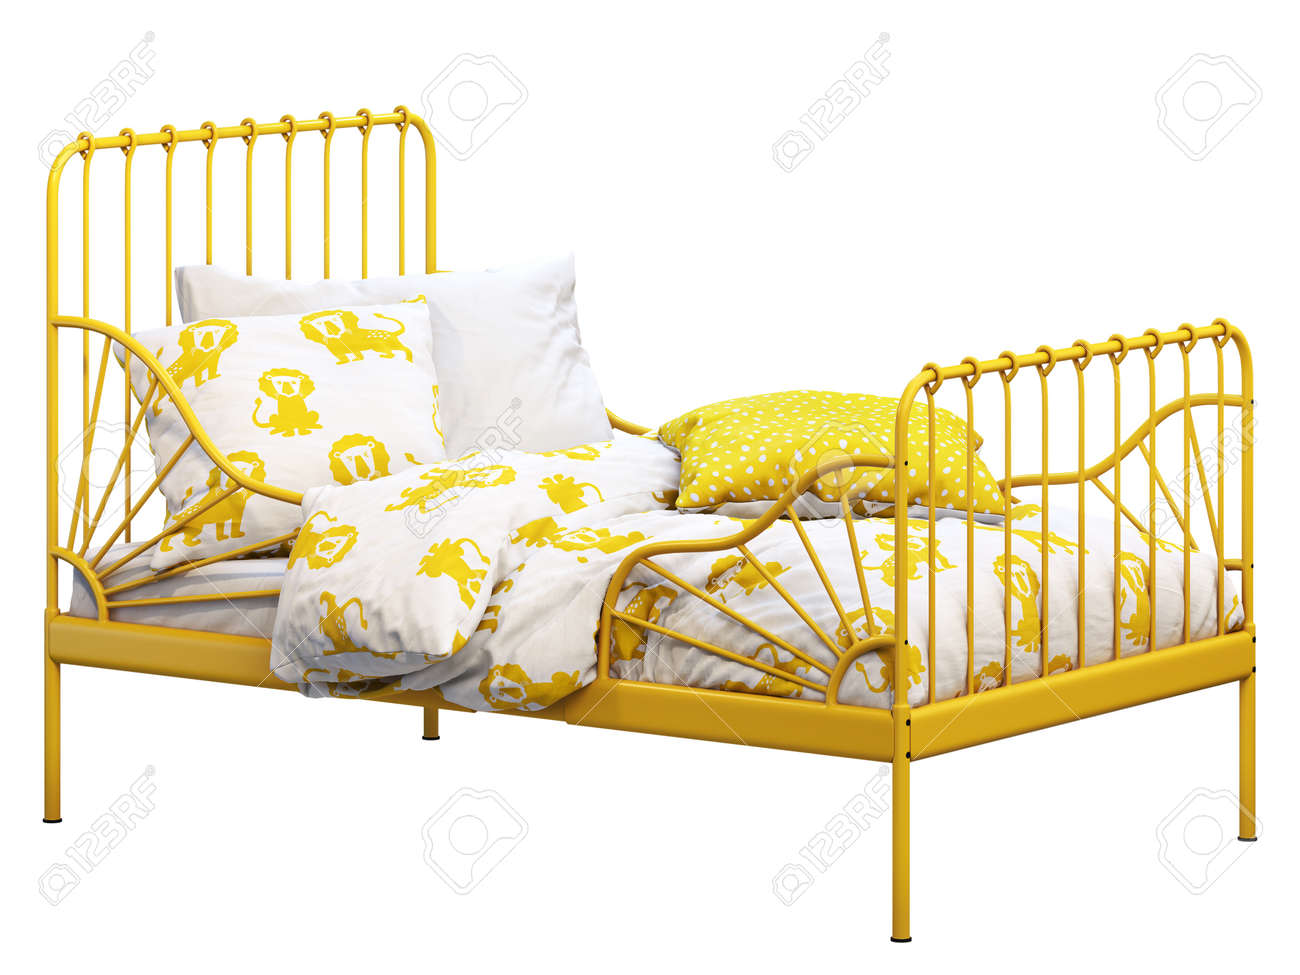 Yellow Metal Frame Single Children S Bed With Colorful Linen Stock Photo Picture And Royalty Free Image Image 138134781